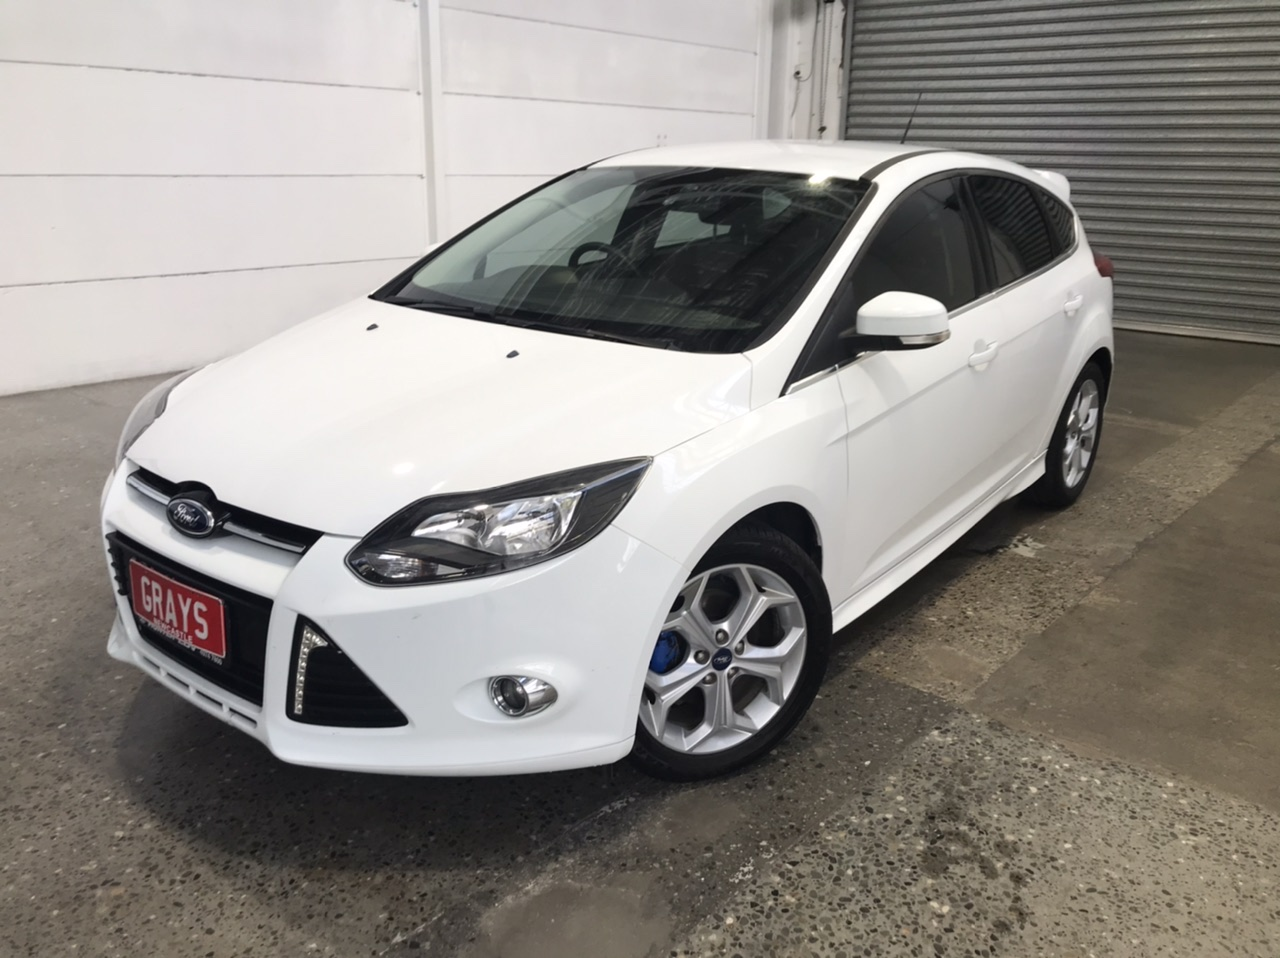 2013 Ford Focus Sport LW II Automatic Hatchback